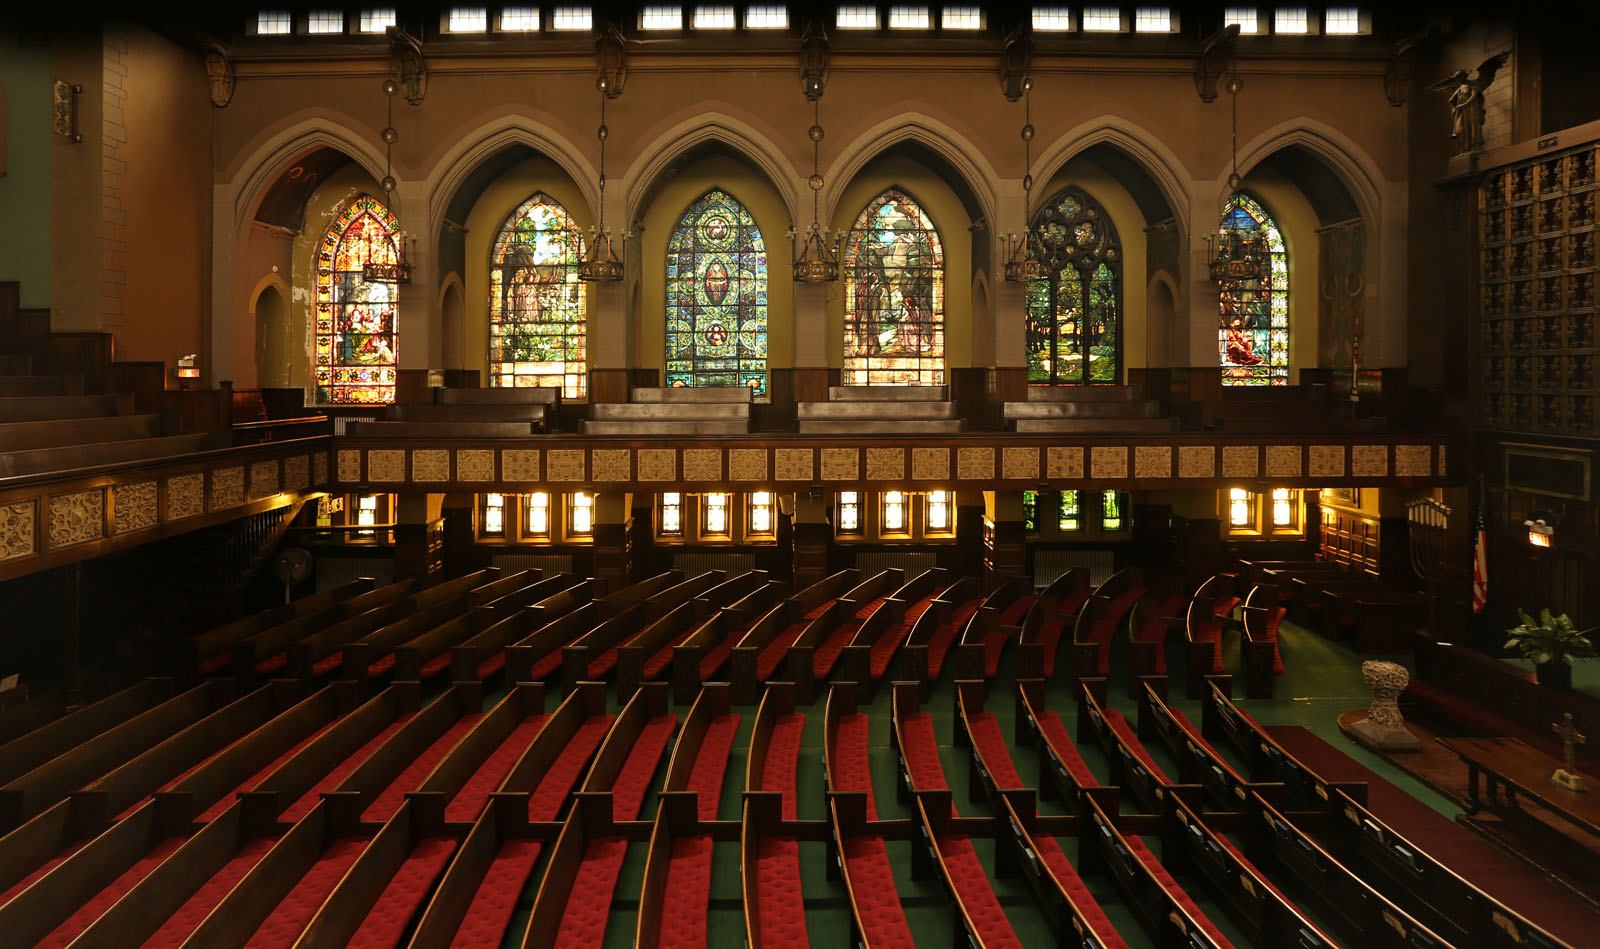 Church interior, with stained glass windows (http://www.socialhistoryofart.com/)